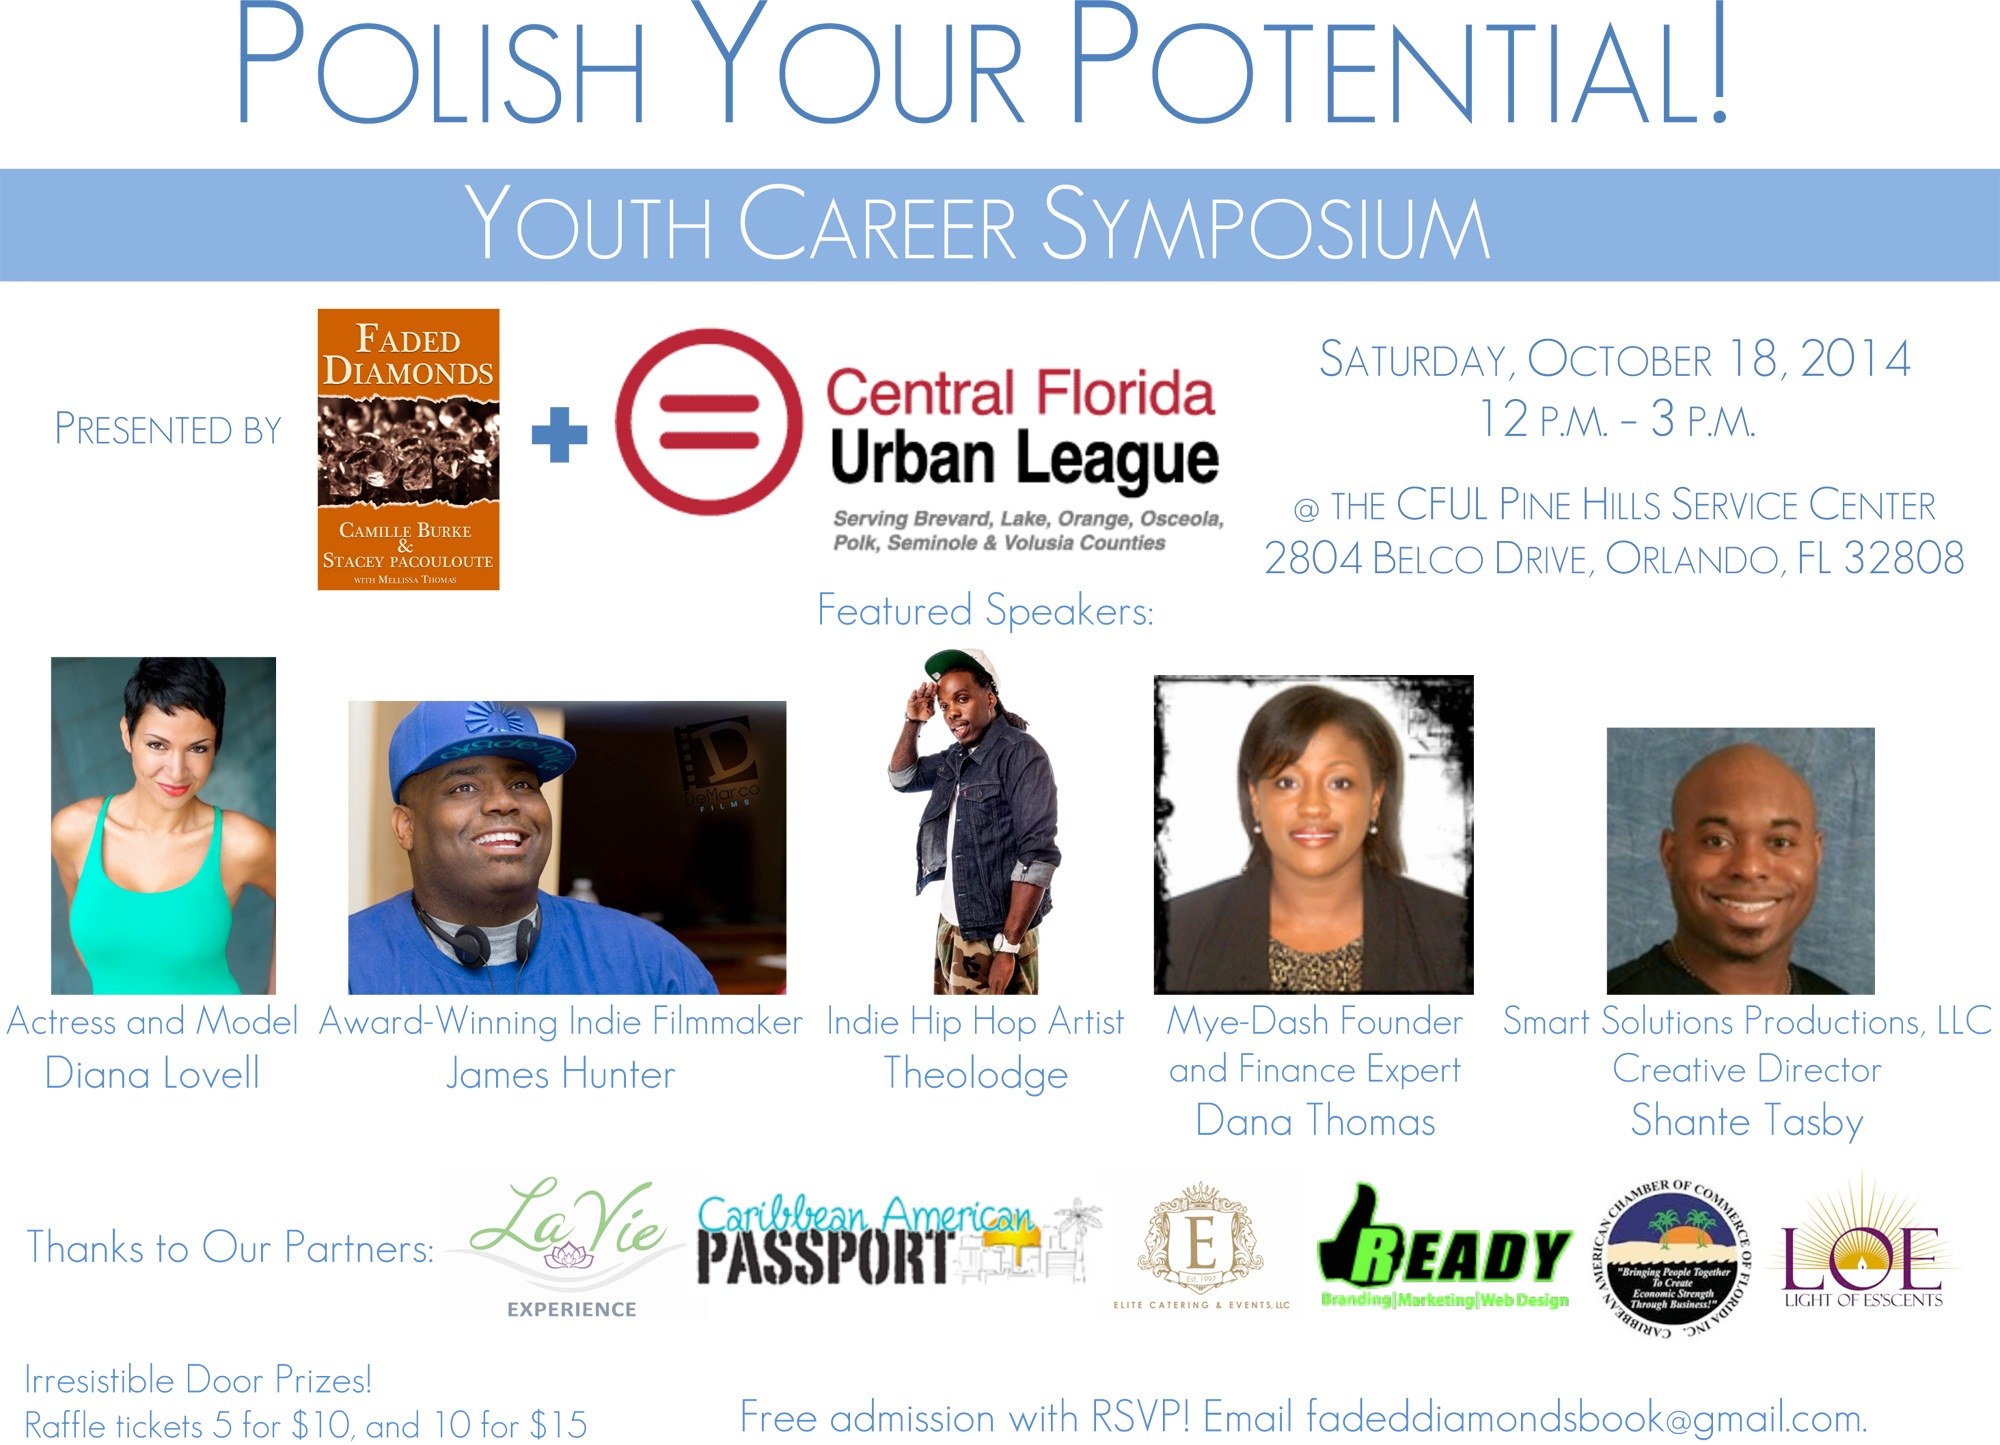 Polish Your Potential